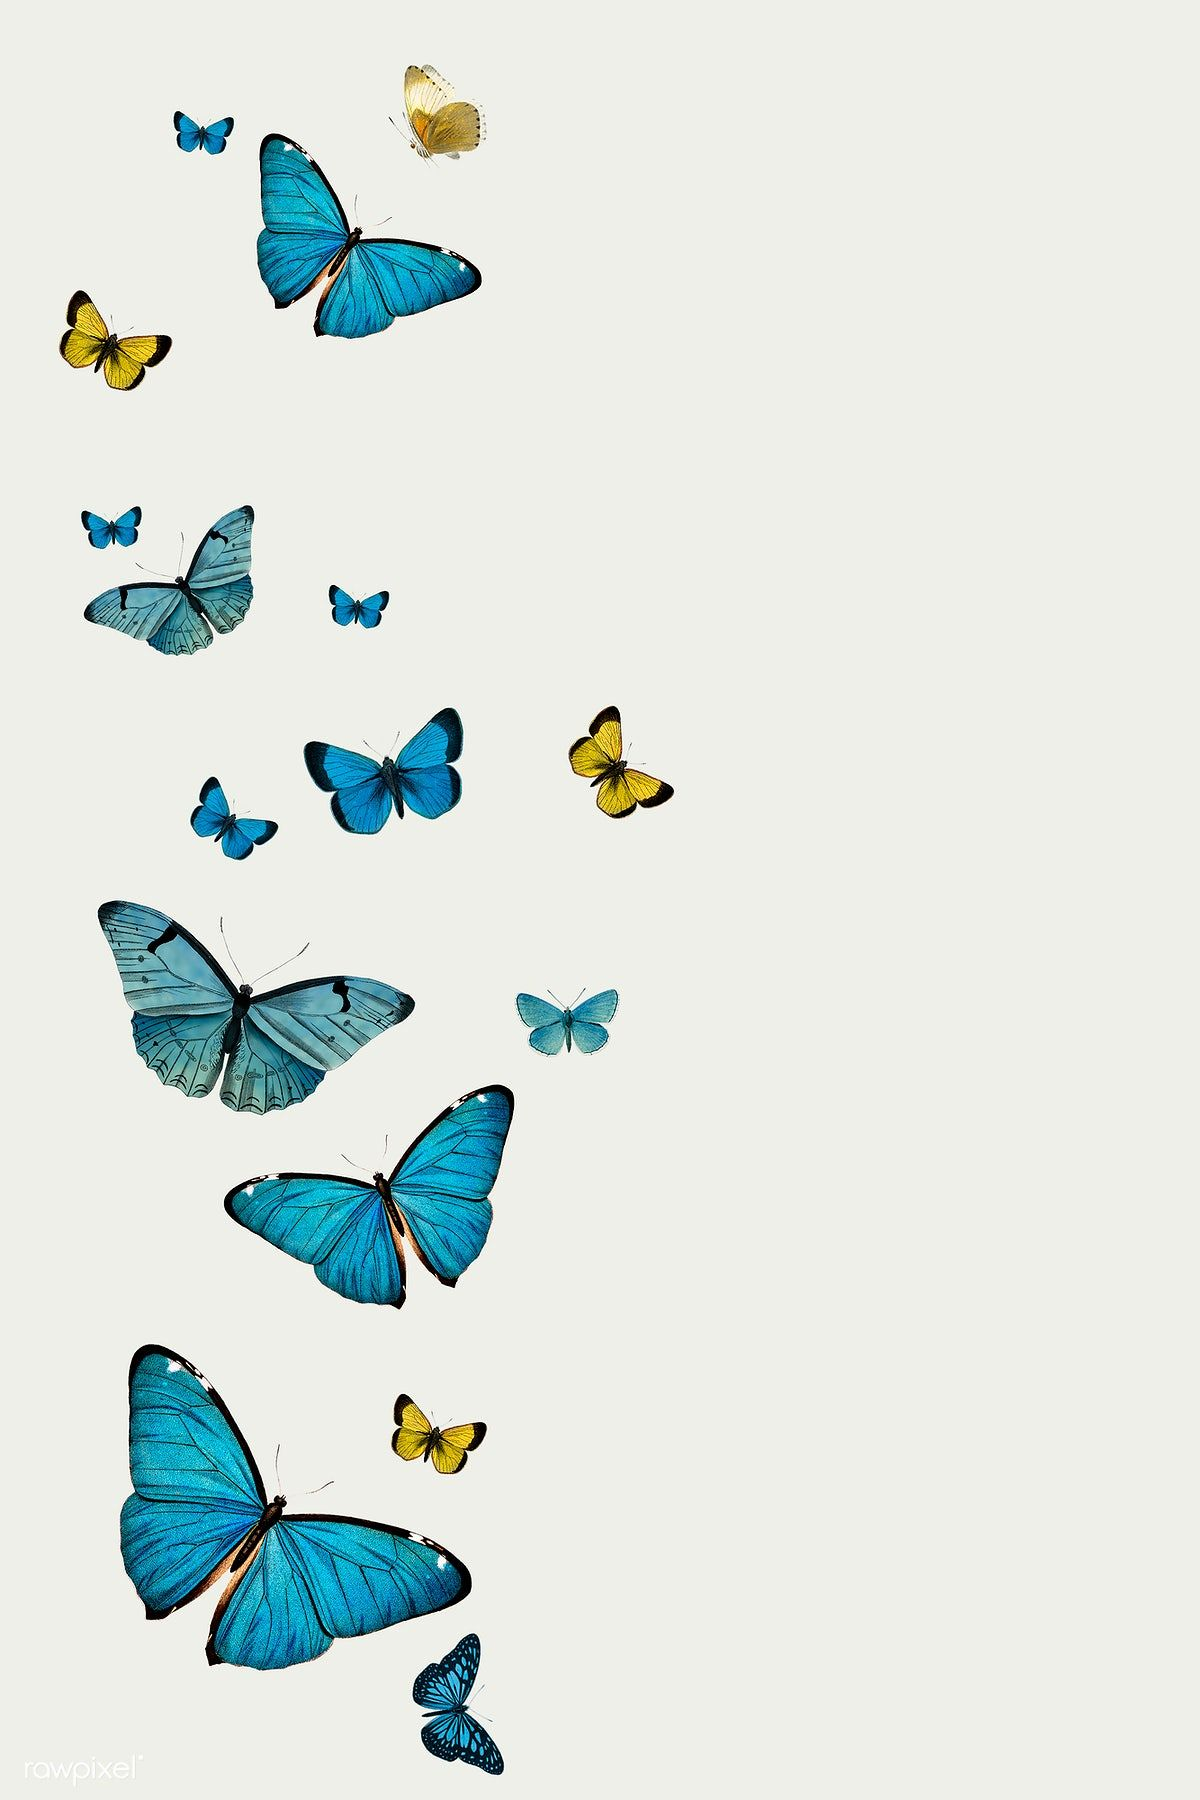 Download premium illustration of Vintage Common Blue butterflies